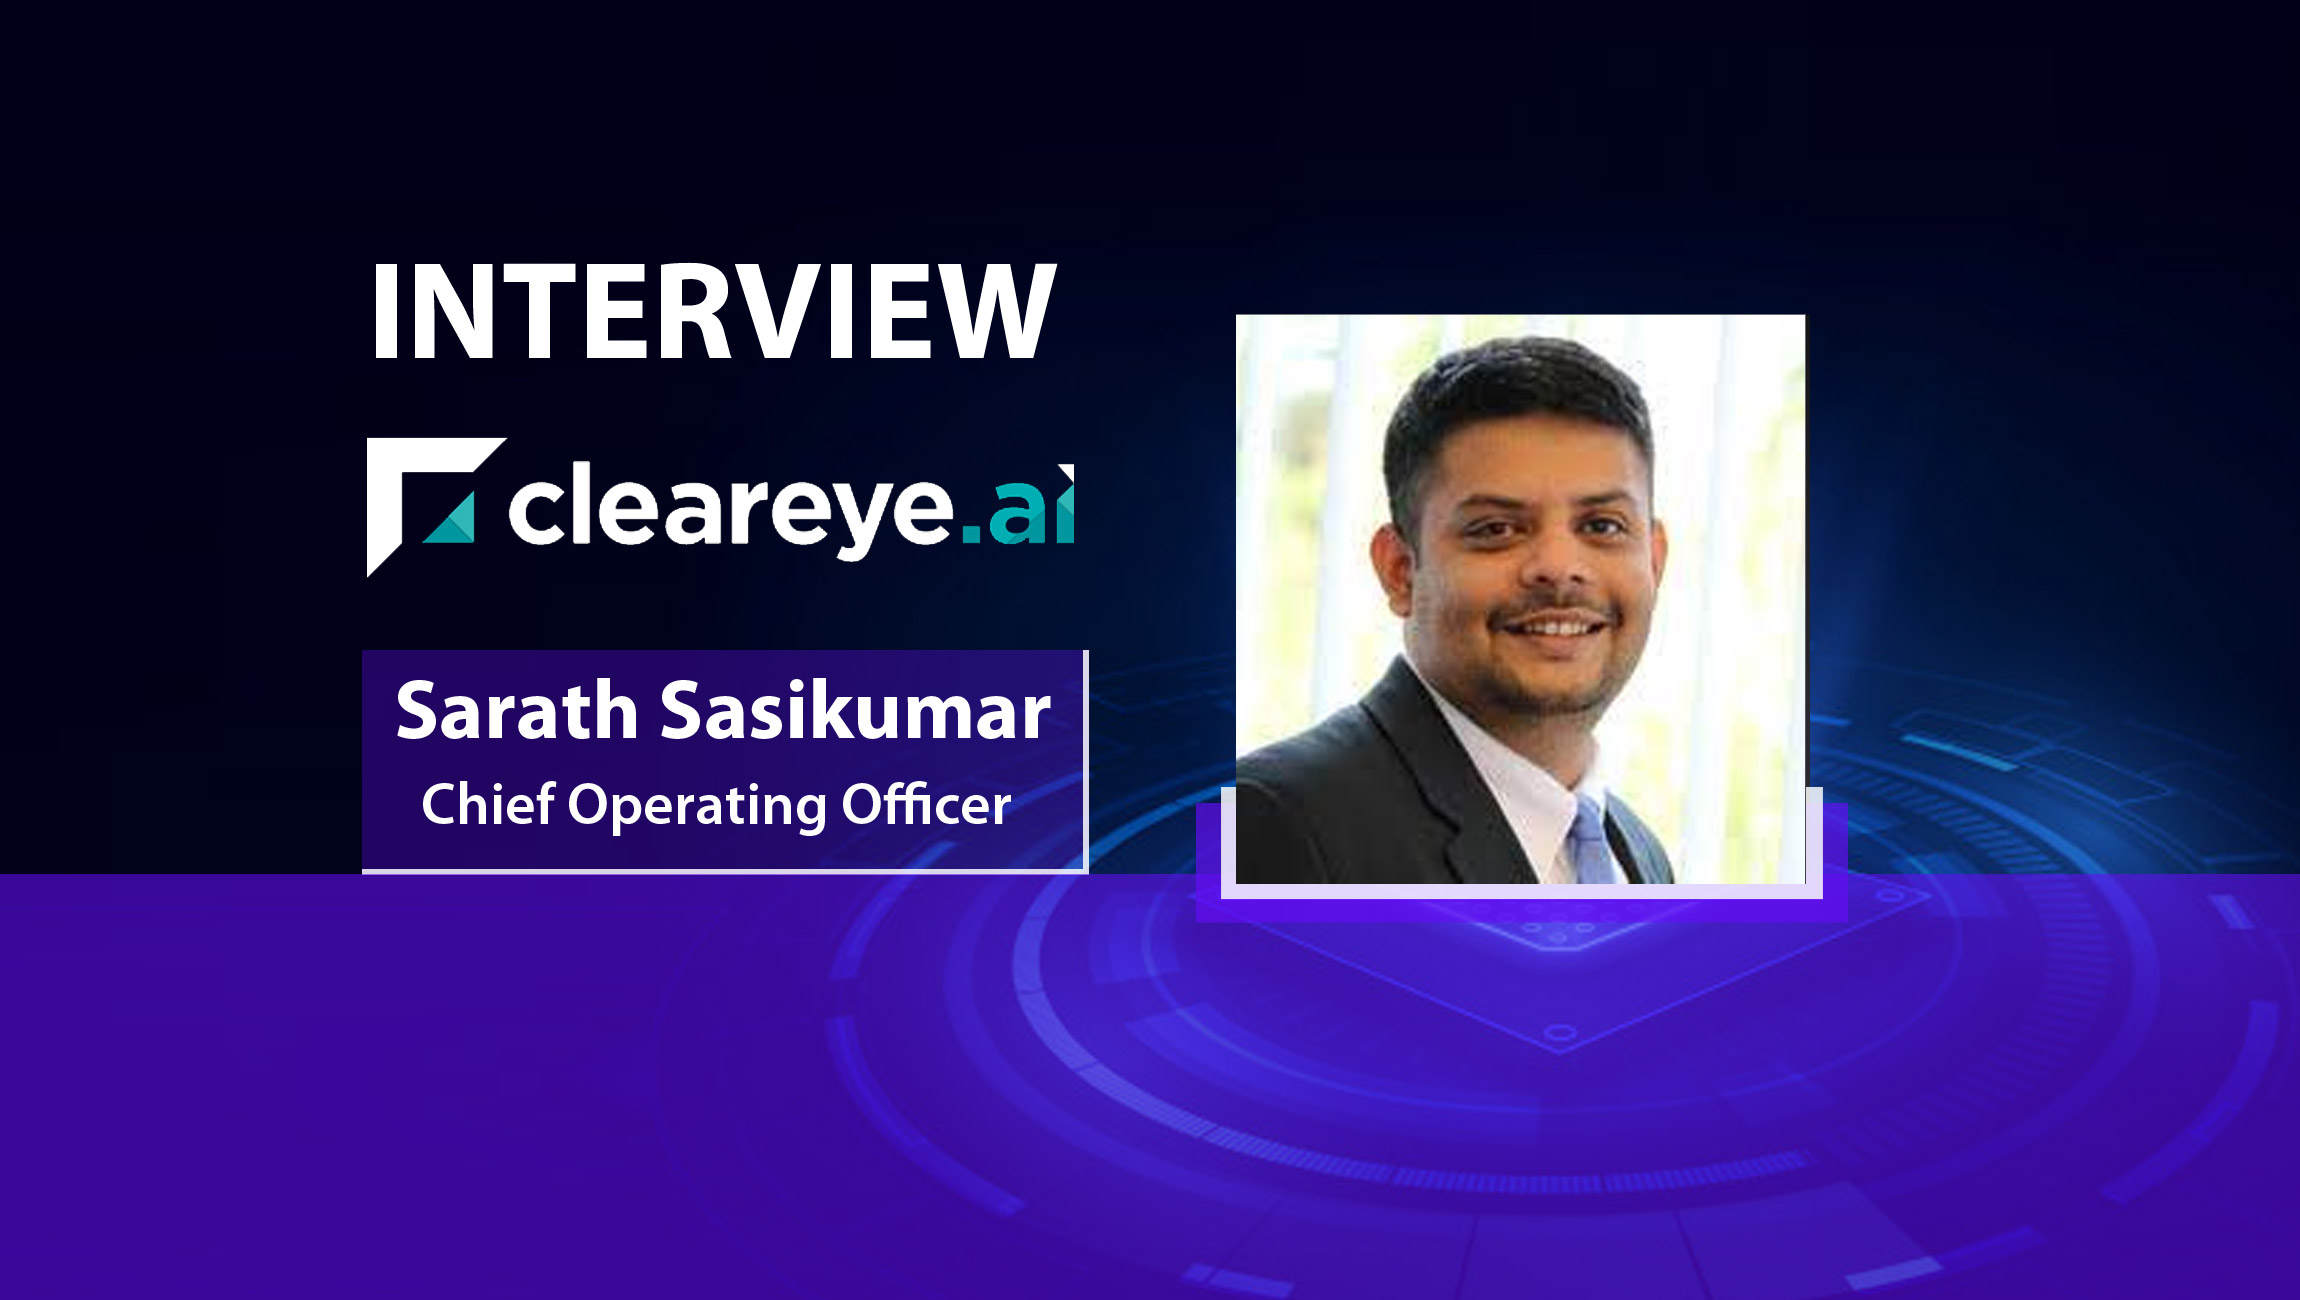 MarTech Series Interview with Sarath Sasikumar, Chief Operating Officer at Cleareye.ai